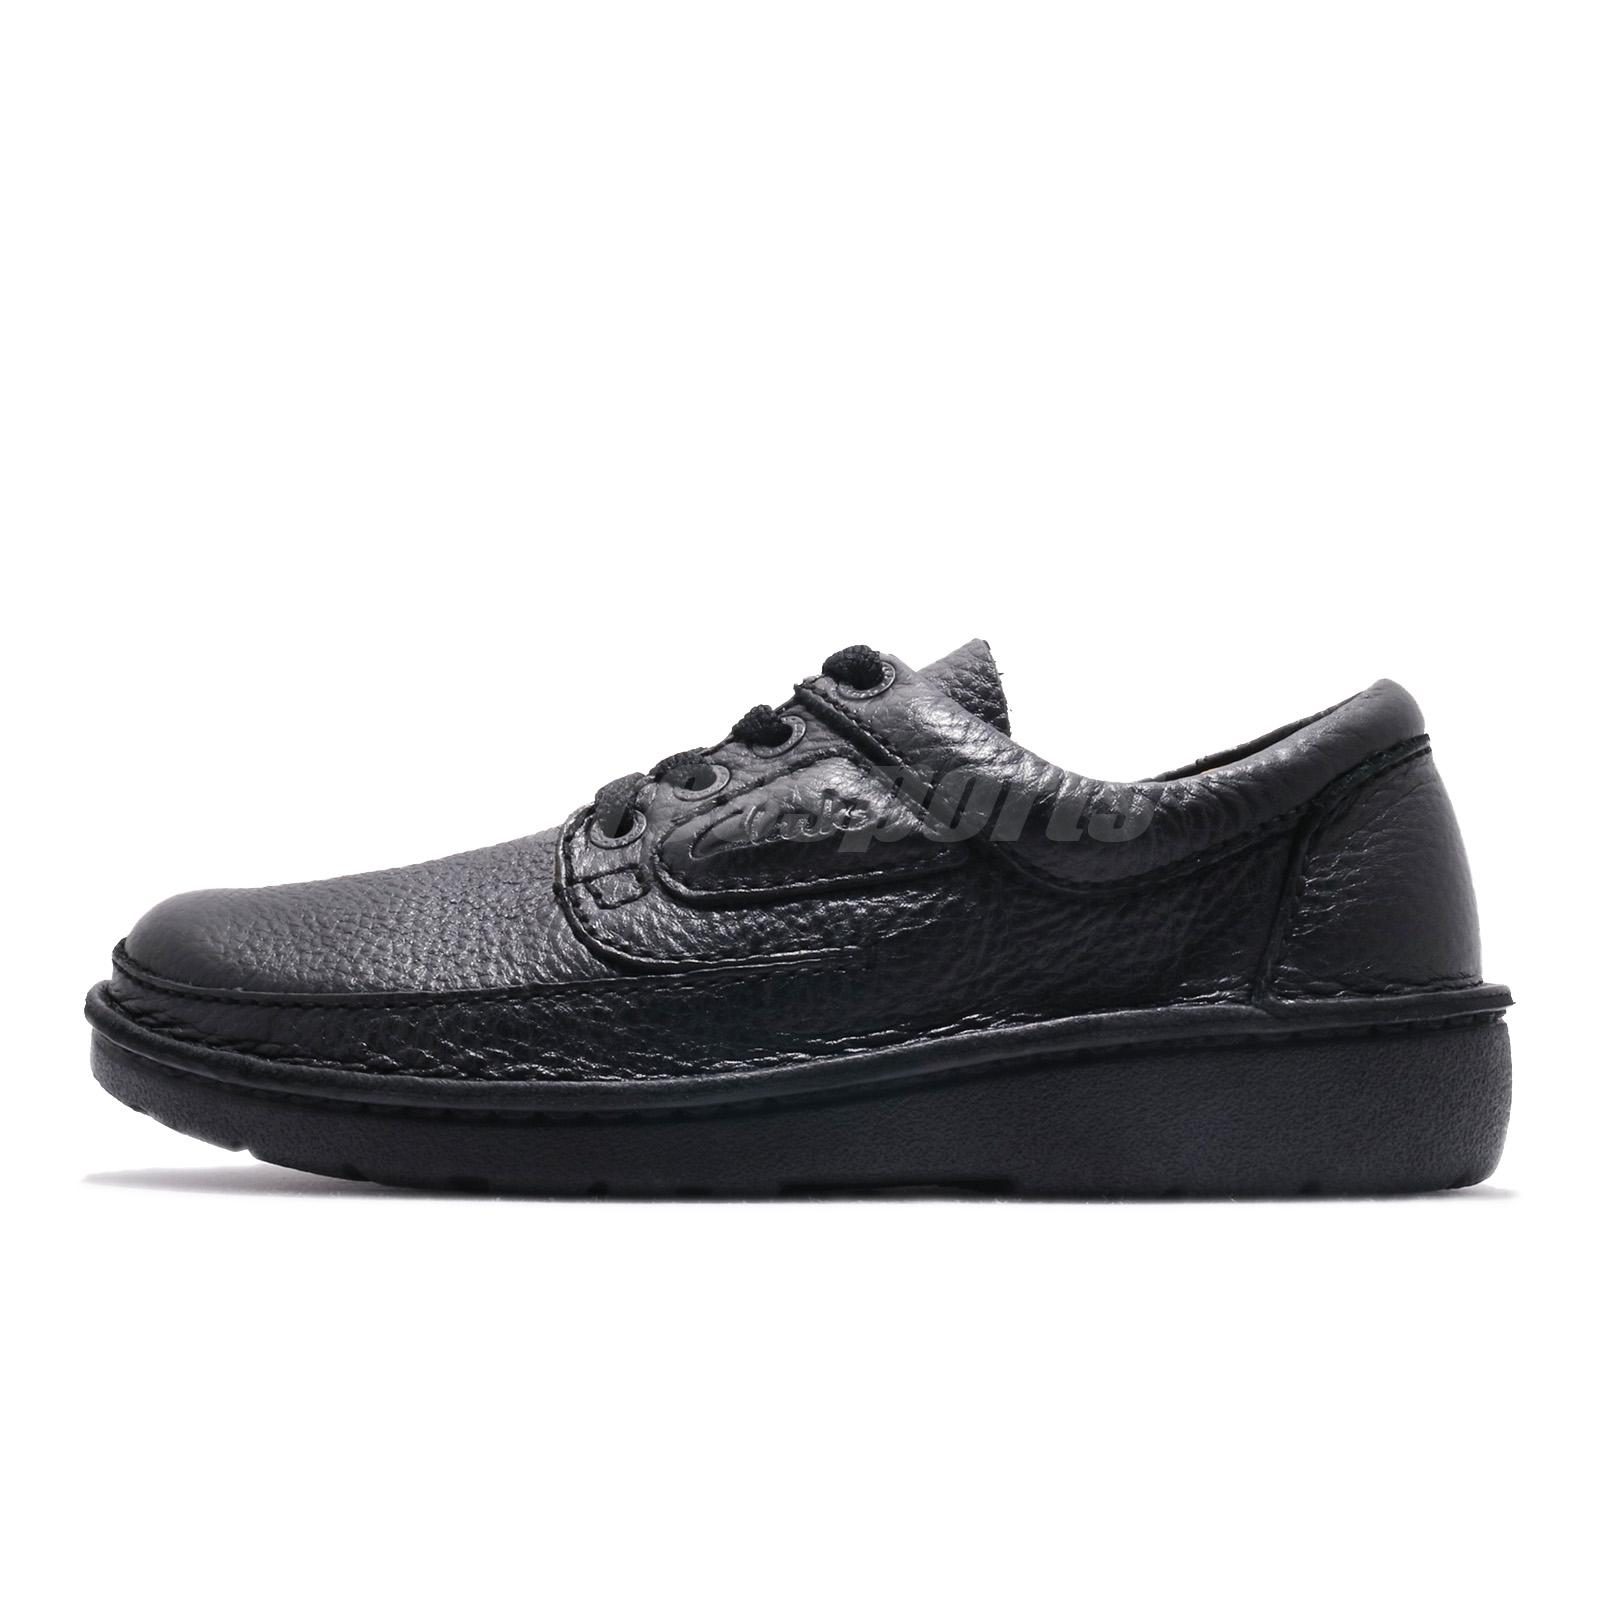 44.5 NEW CLARKS NATURE VI SPORT MENS BLACK  CASUAL SHOES SIZE 10